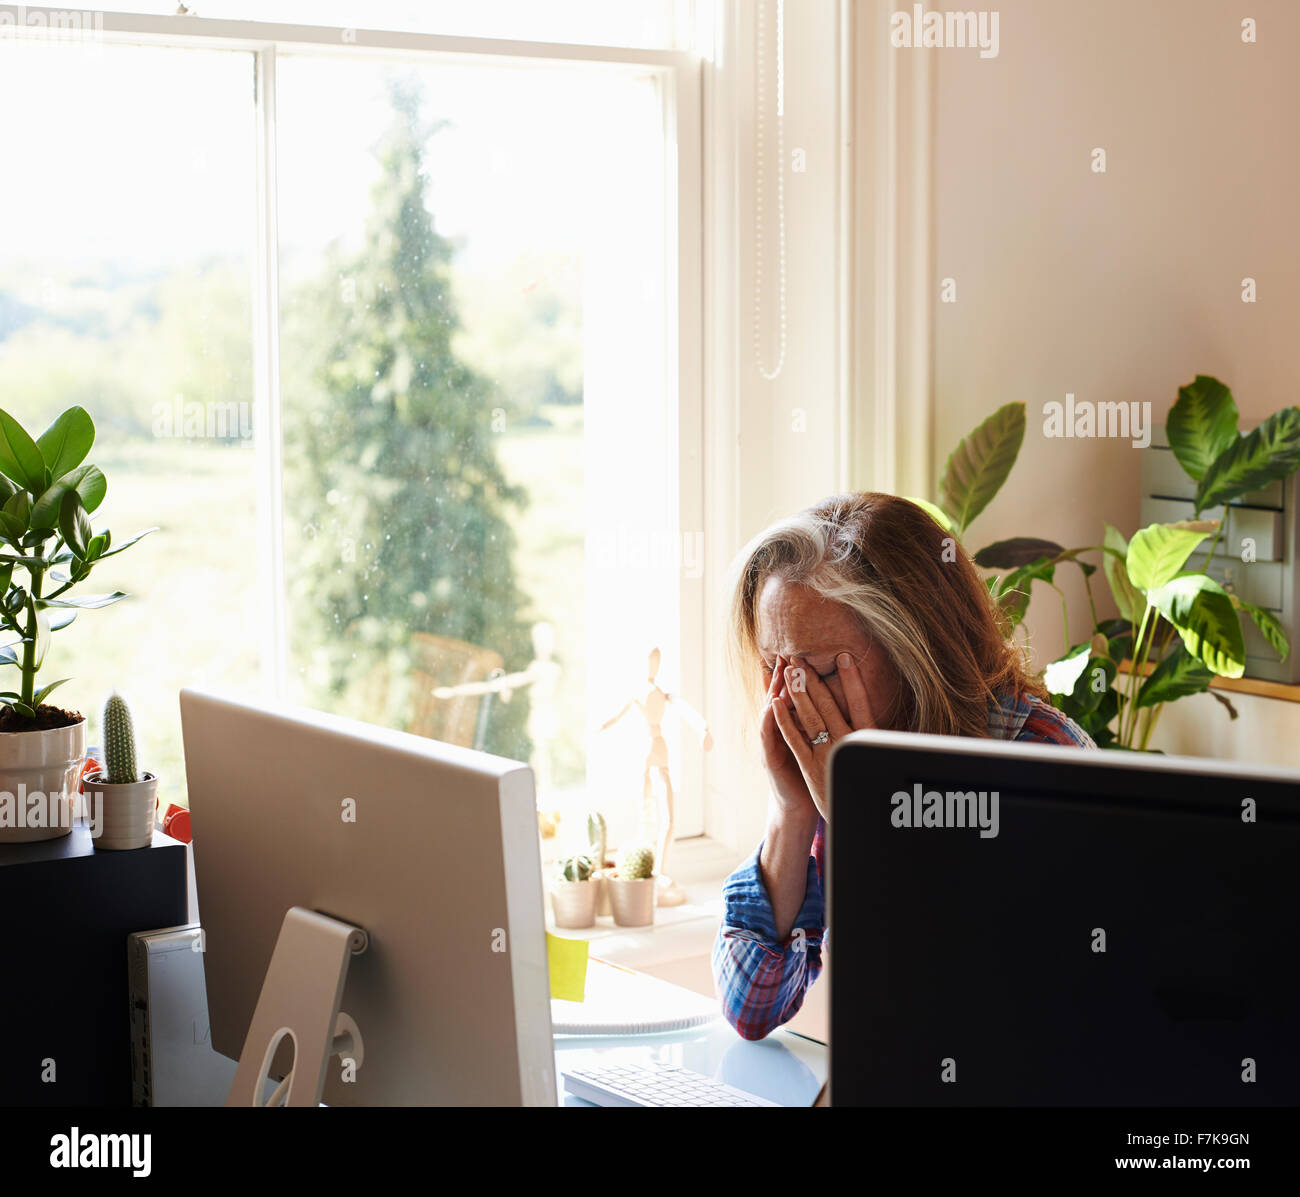 Tired woman with head in hands at computer in home office - Stock Image